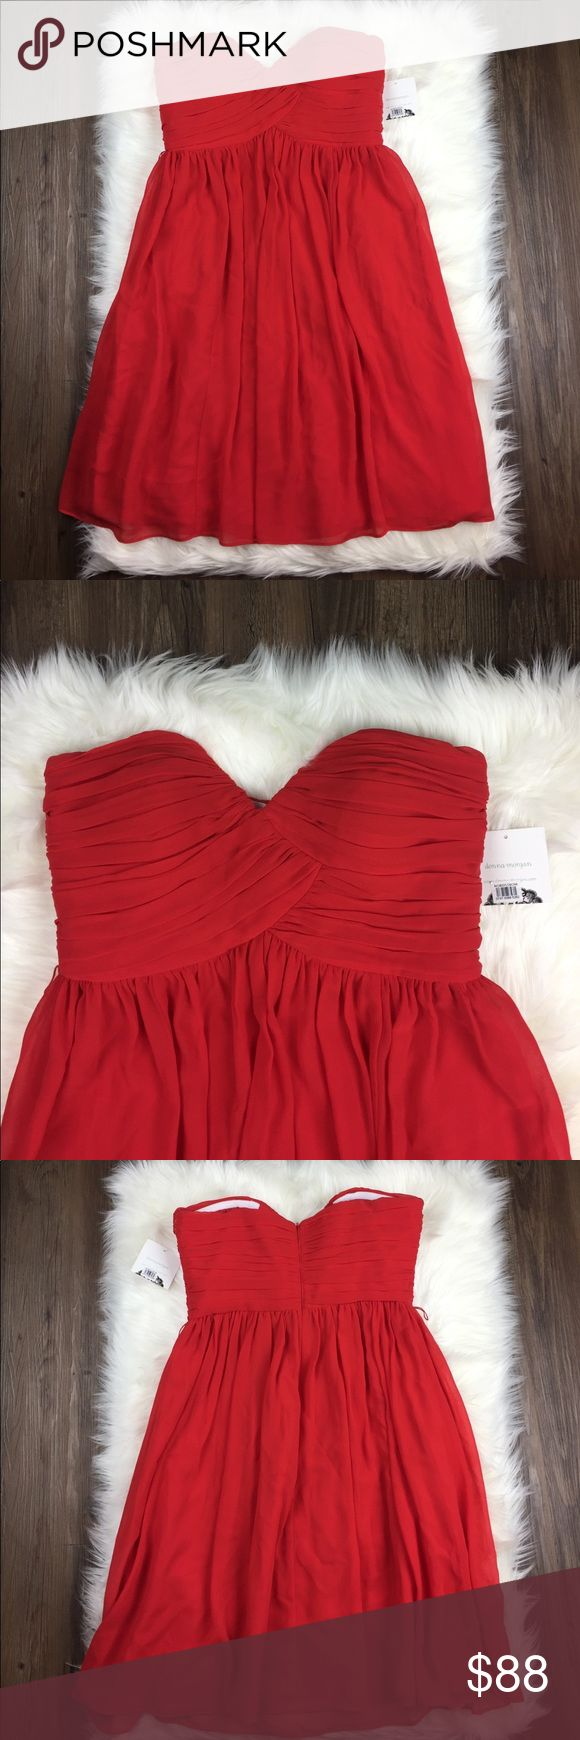 "NWT Donna Morgan Strapless Fire Red Chiffon Dress New with tags and in perfect condition! Donna Morgan red Chiffon dress, knee length, fully lined. Hidden zipper on back, society stretch straps hug chest lining. Size is 10. Waist = 31"" Length is 30"" Donna Morgan Dresses"